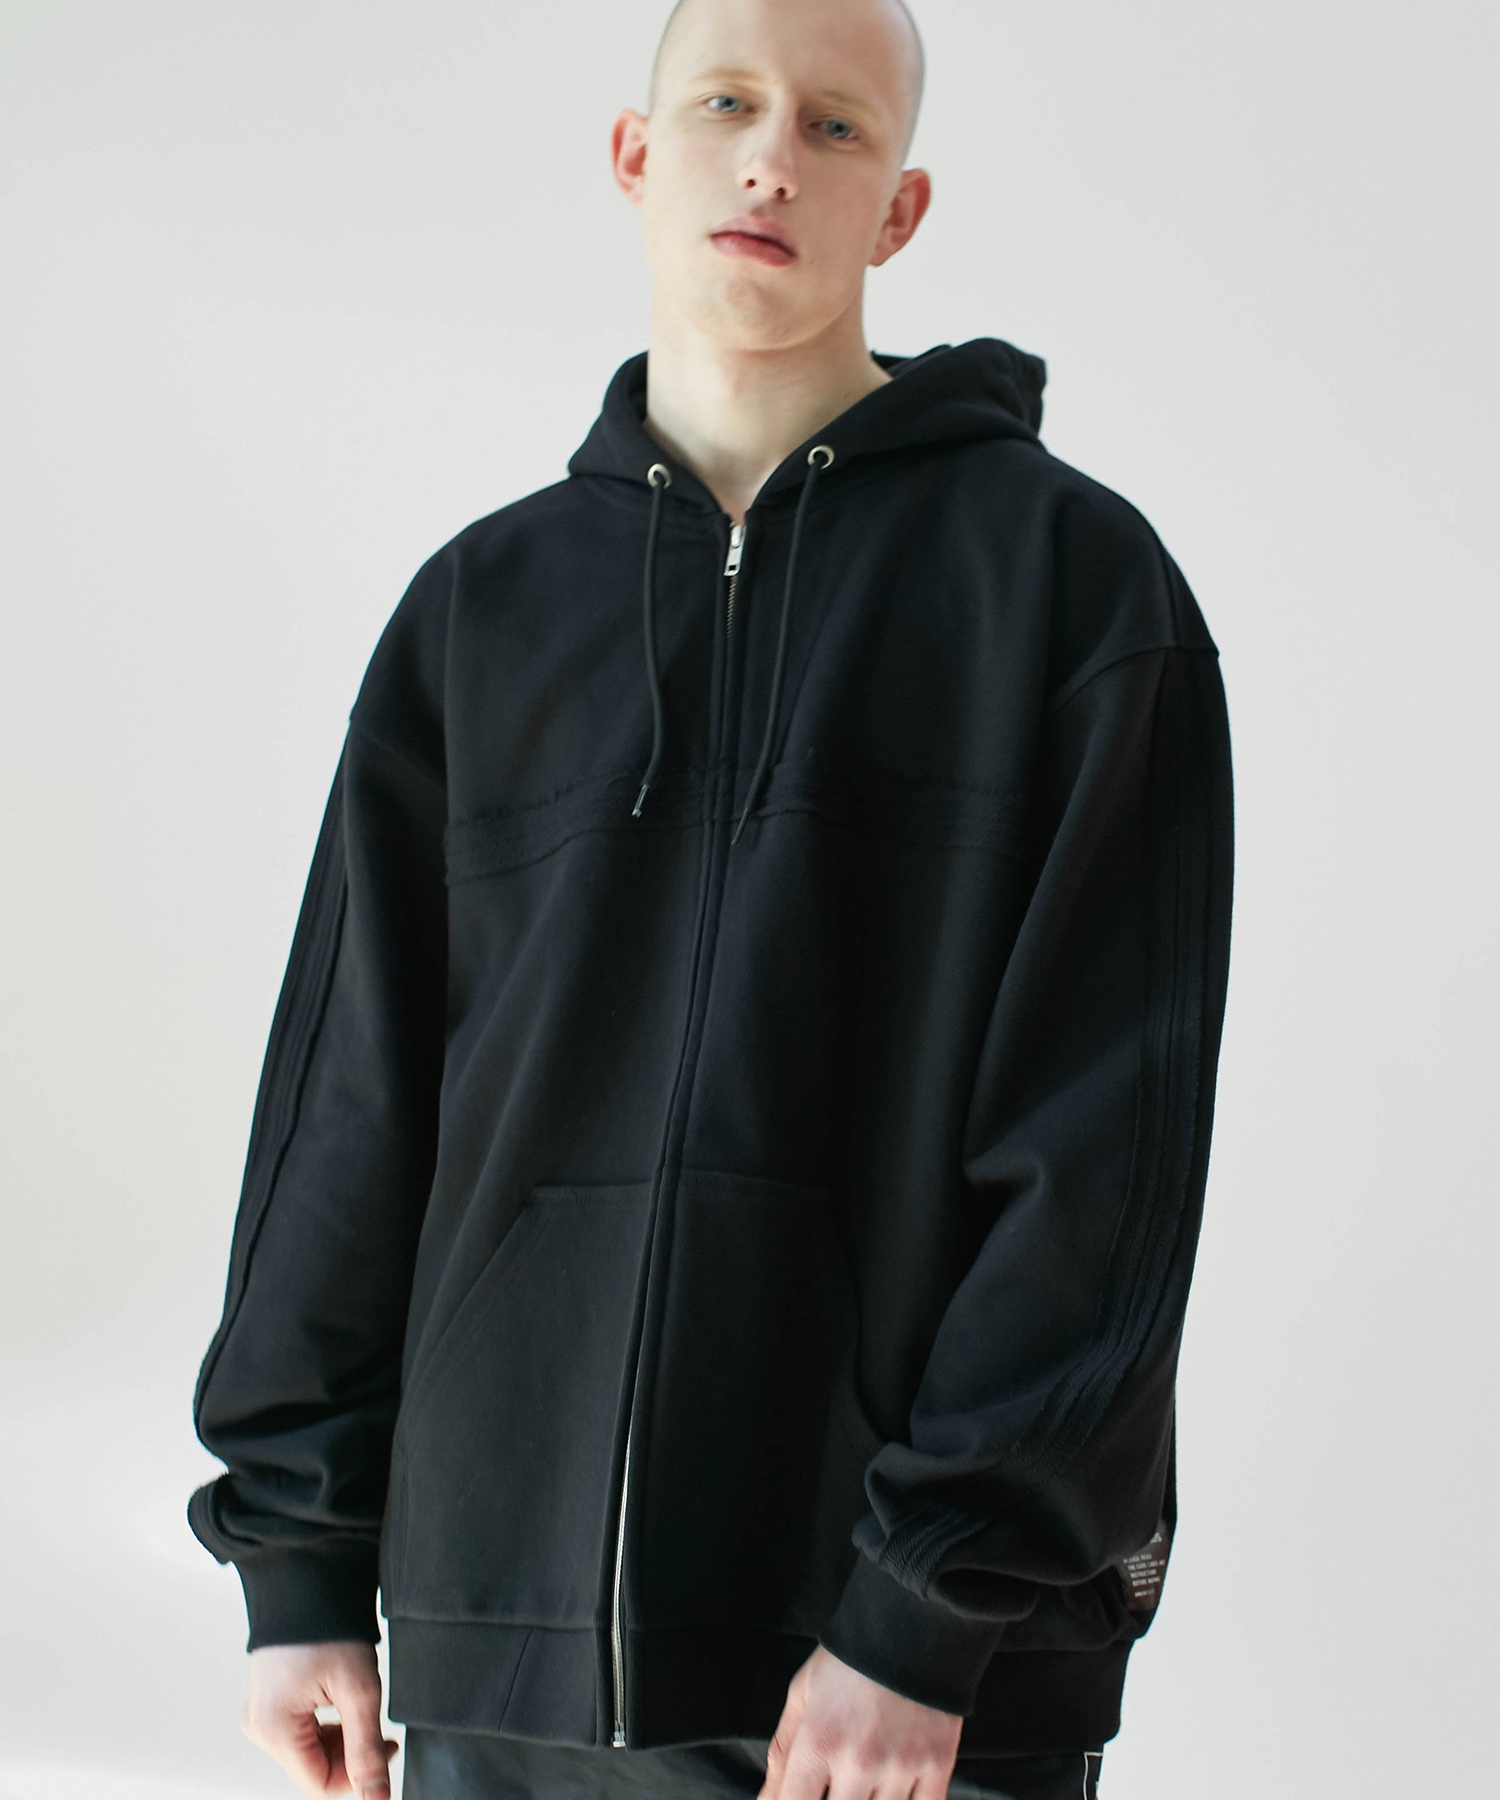 SL Oversized Zip Up Hoodie (Black)